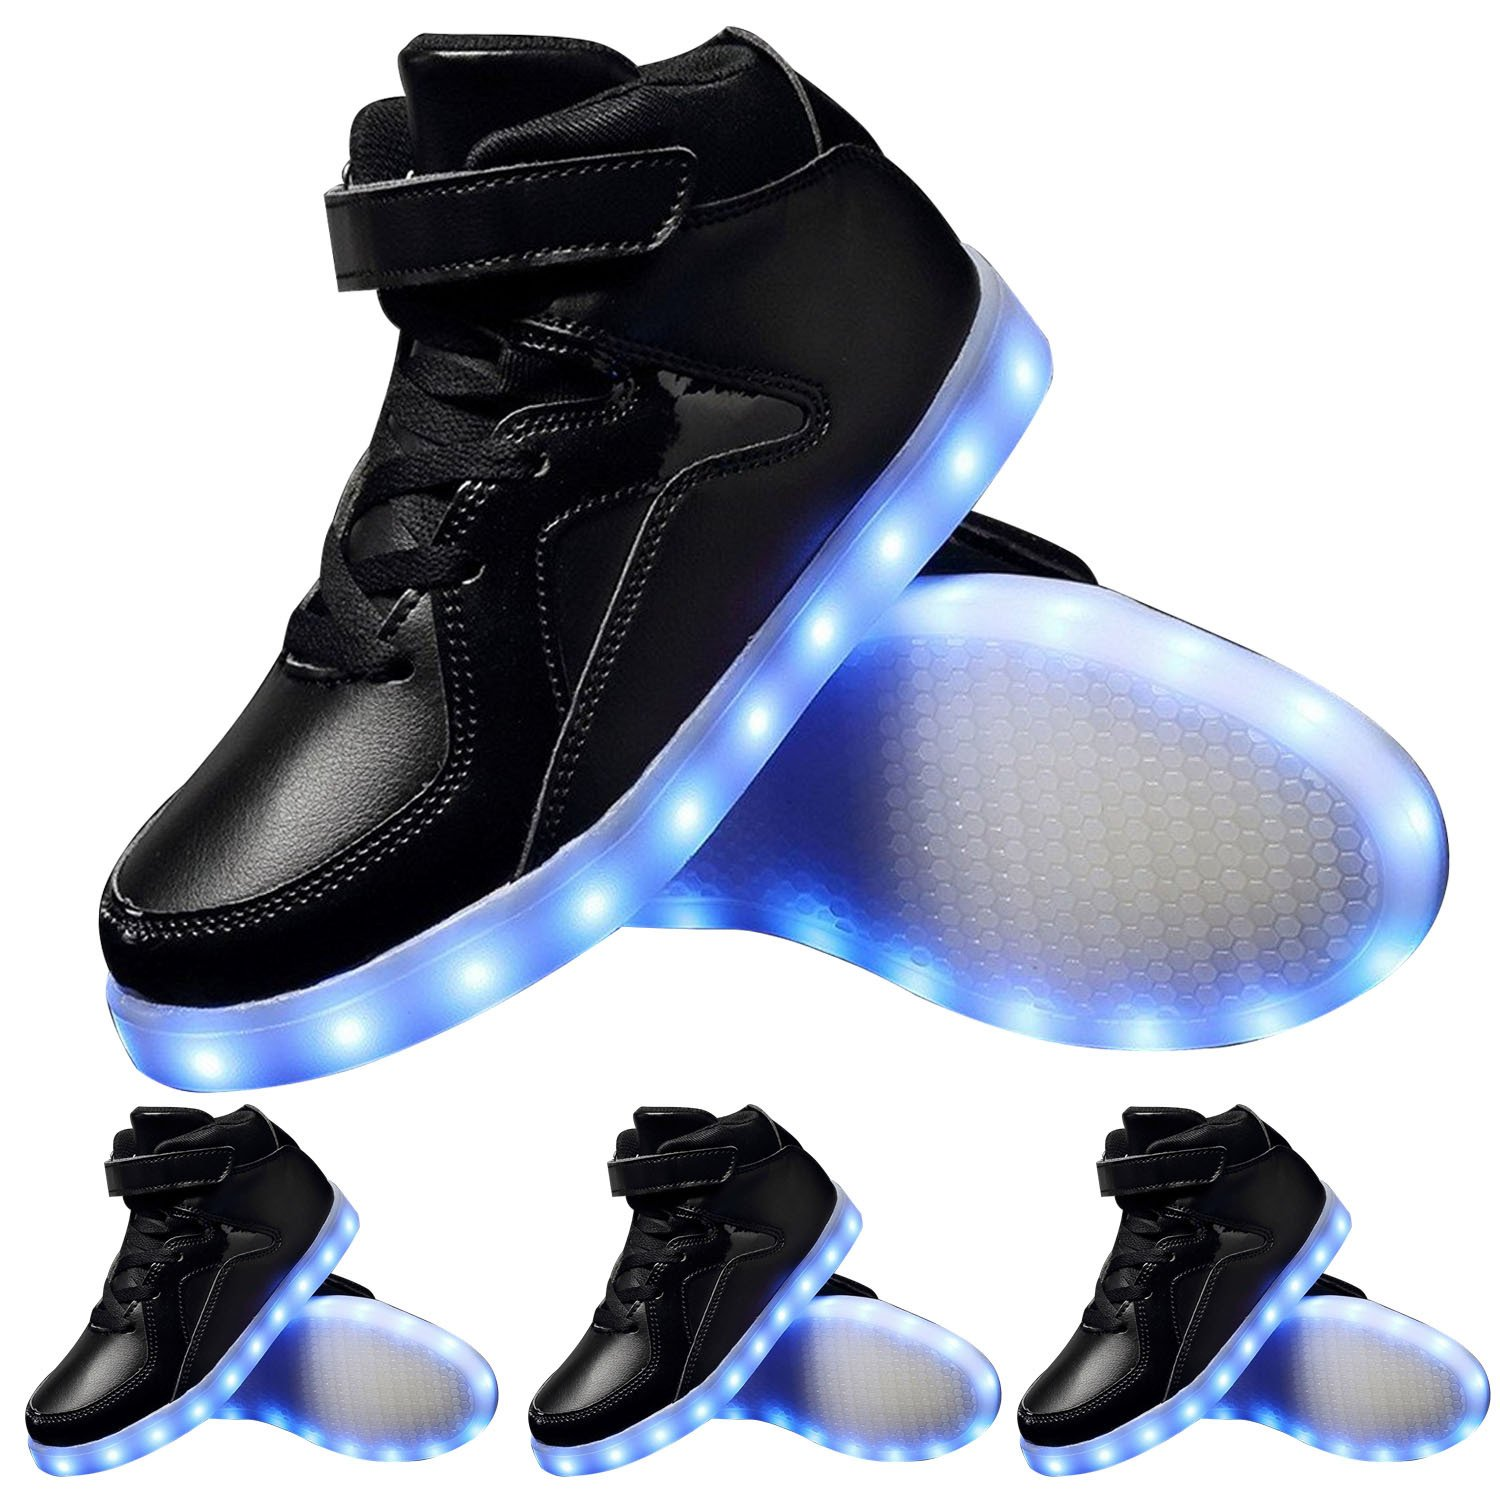 TUTUYU Kids 11 Colors LED Light Up Shoes High Top Fashion Flashing Sneakers Bright Black 39